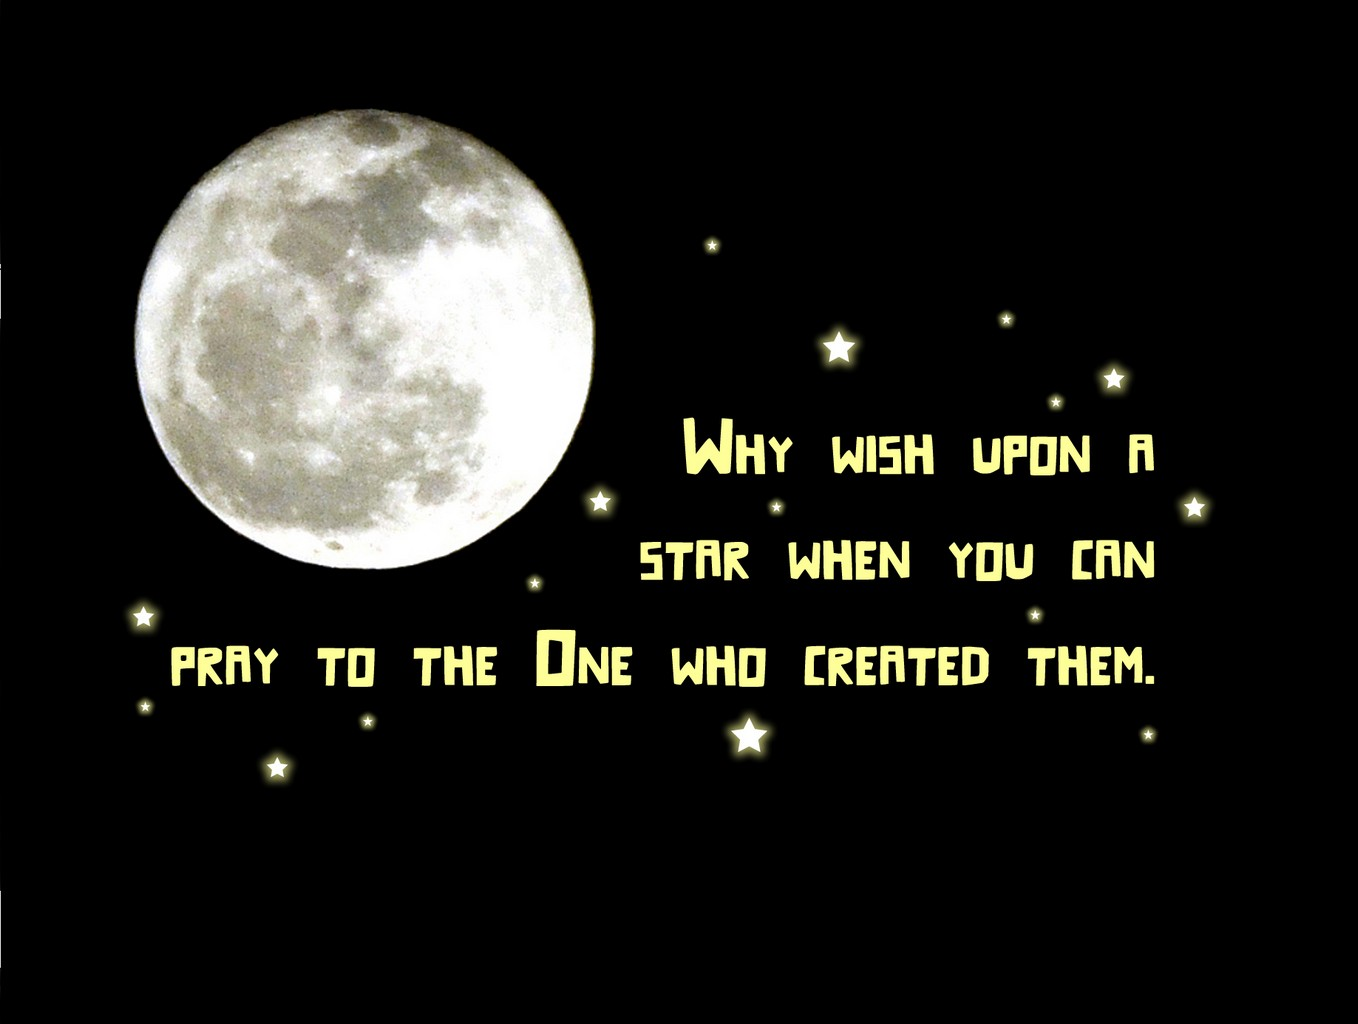 Upon star wish poem a A Wish